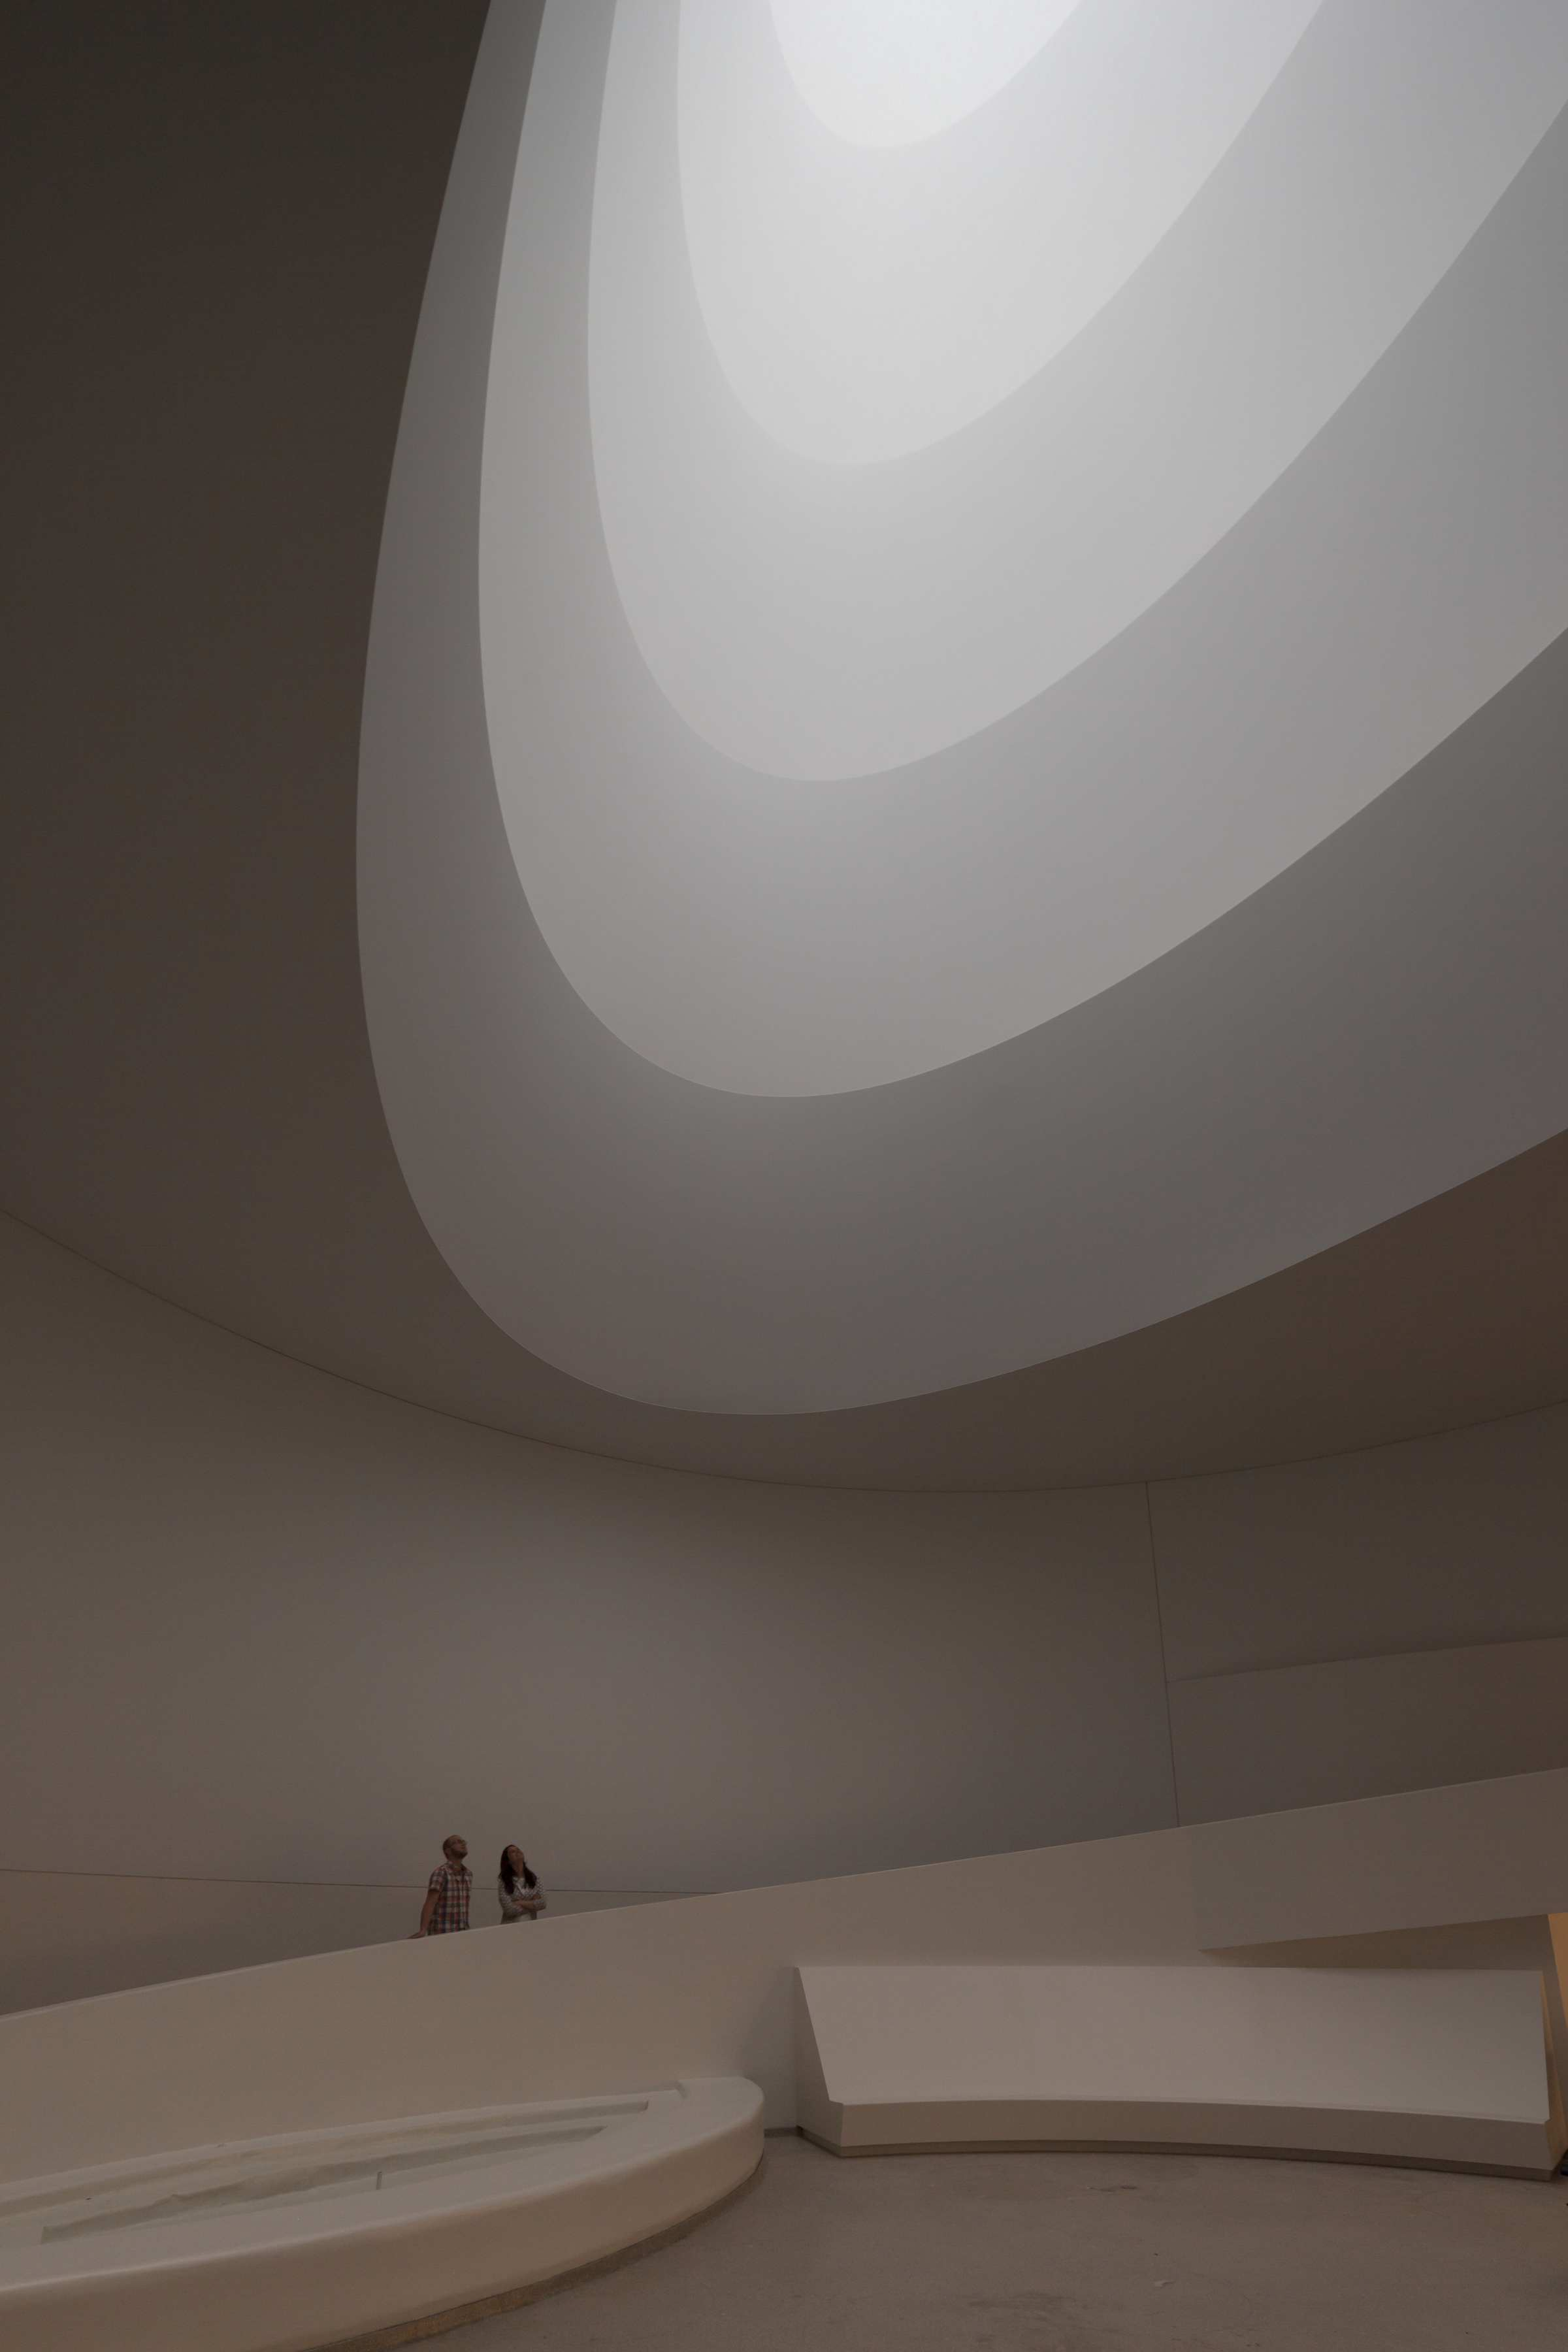 James Turrell Aten Reign, 2013 Daylight and LED light, dimensions variable © James Turrell Installation view: James Turrell, Solomon R. Guggenheim Museum, New York, June 21–September 25, 2013 (Photo: David Heald © Solomon R. Guggenheim Foundation, New York